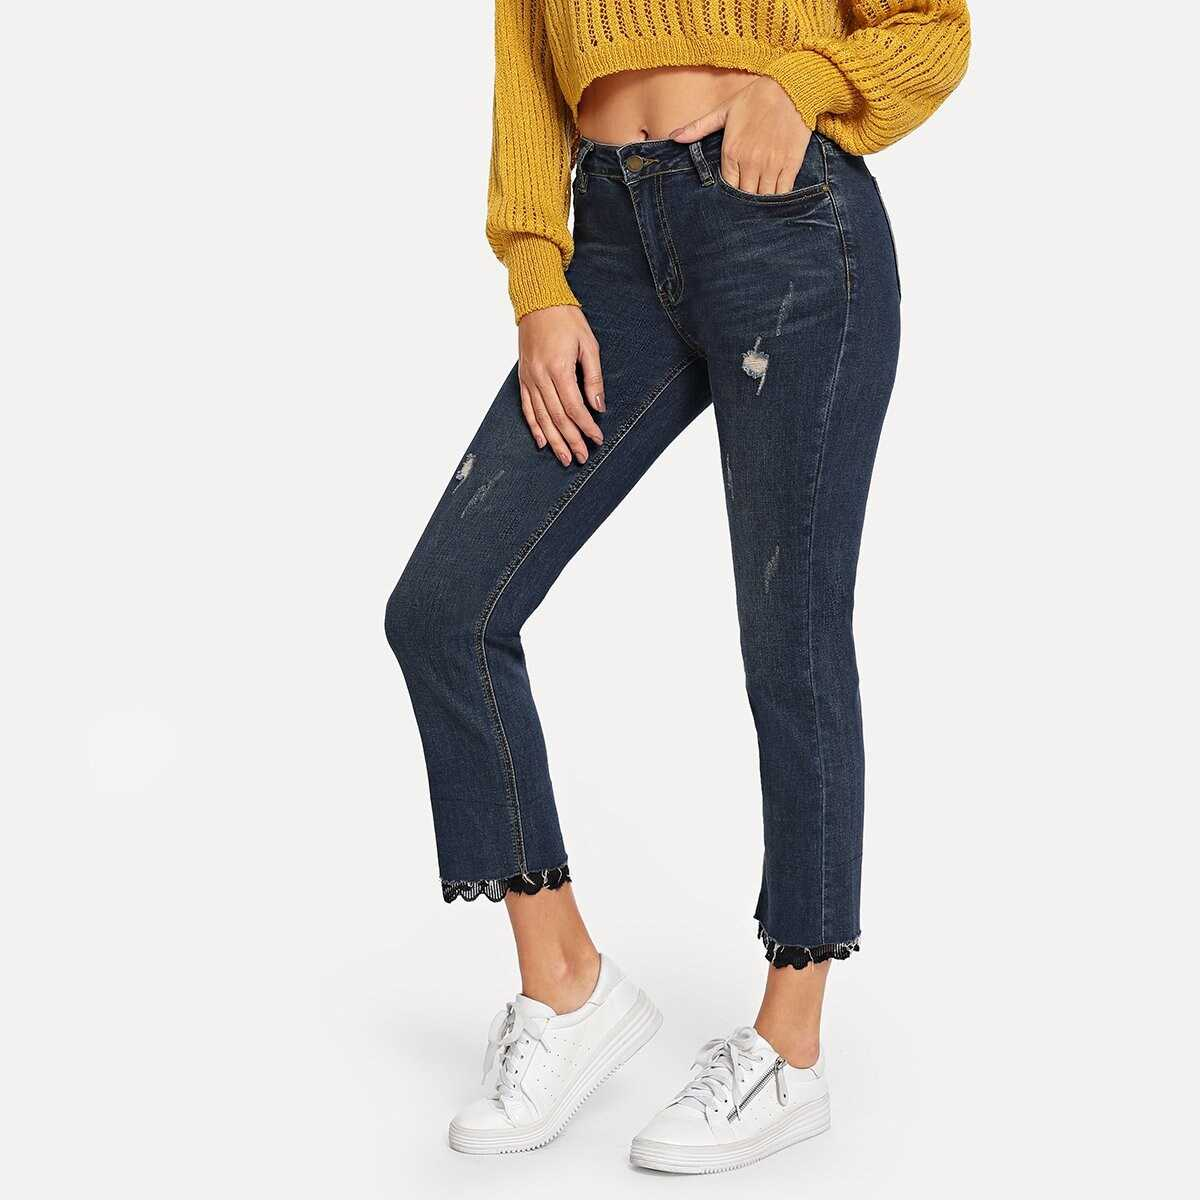 Contrast Lace Ripped Jeans - Shein - GOOFASH